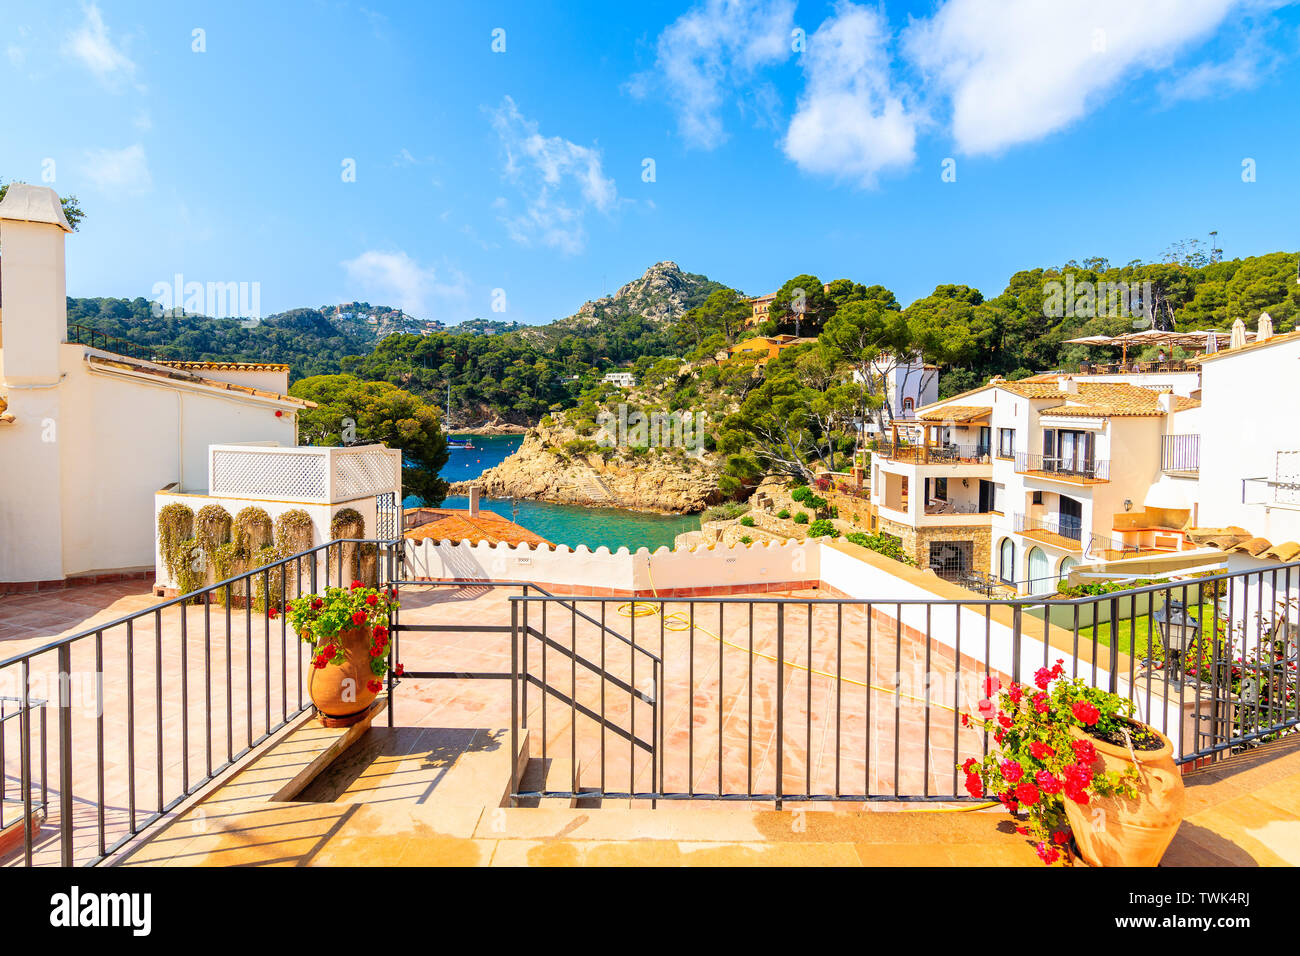 Terrace with flowerpots overlooking beach and holiday apartments in Fornells village, Costa Brava, Spain Stock Photo